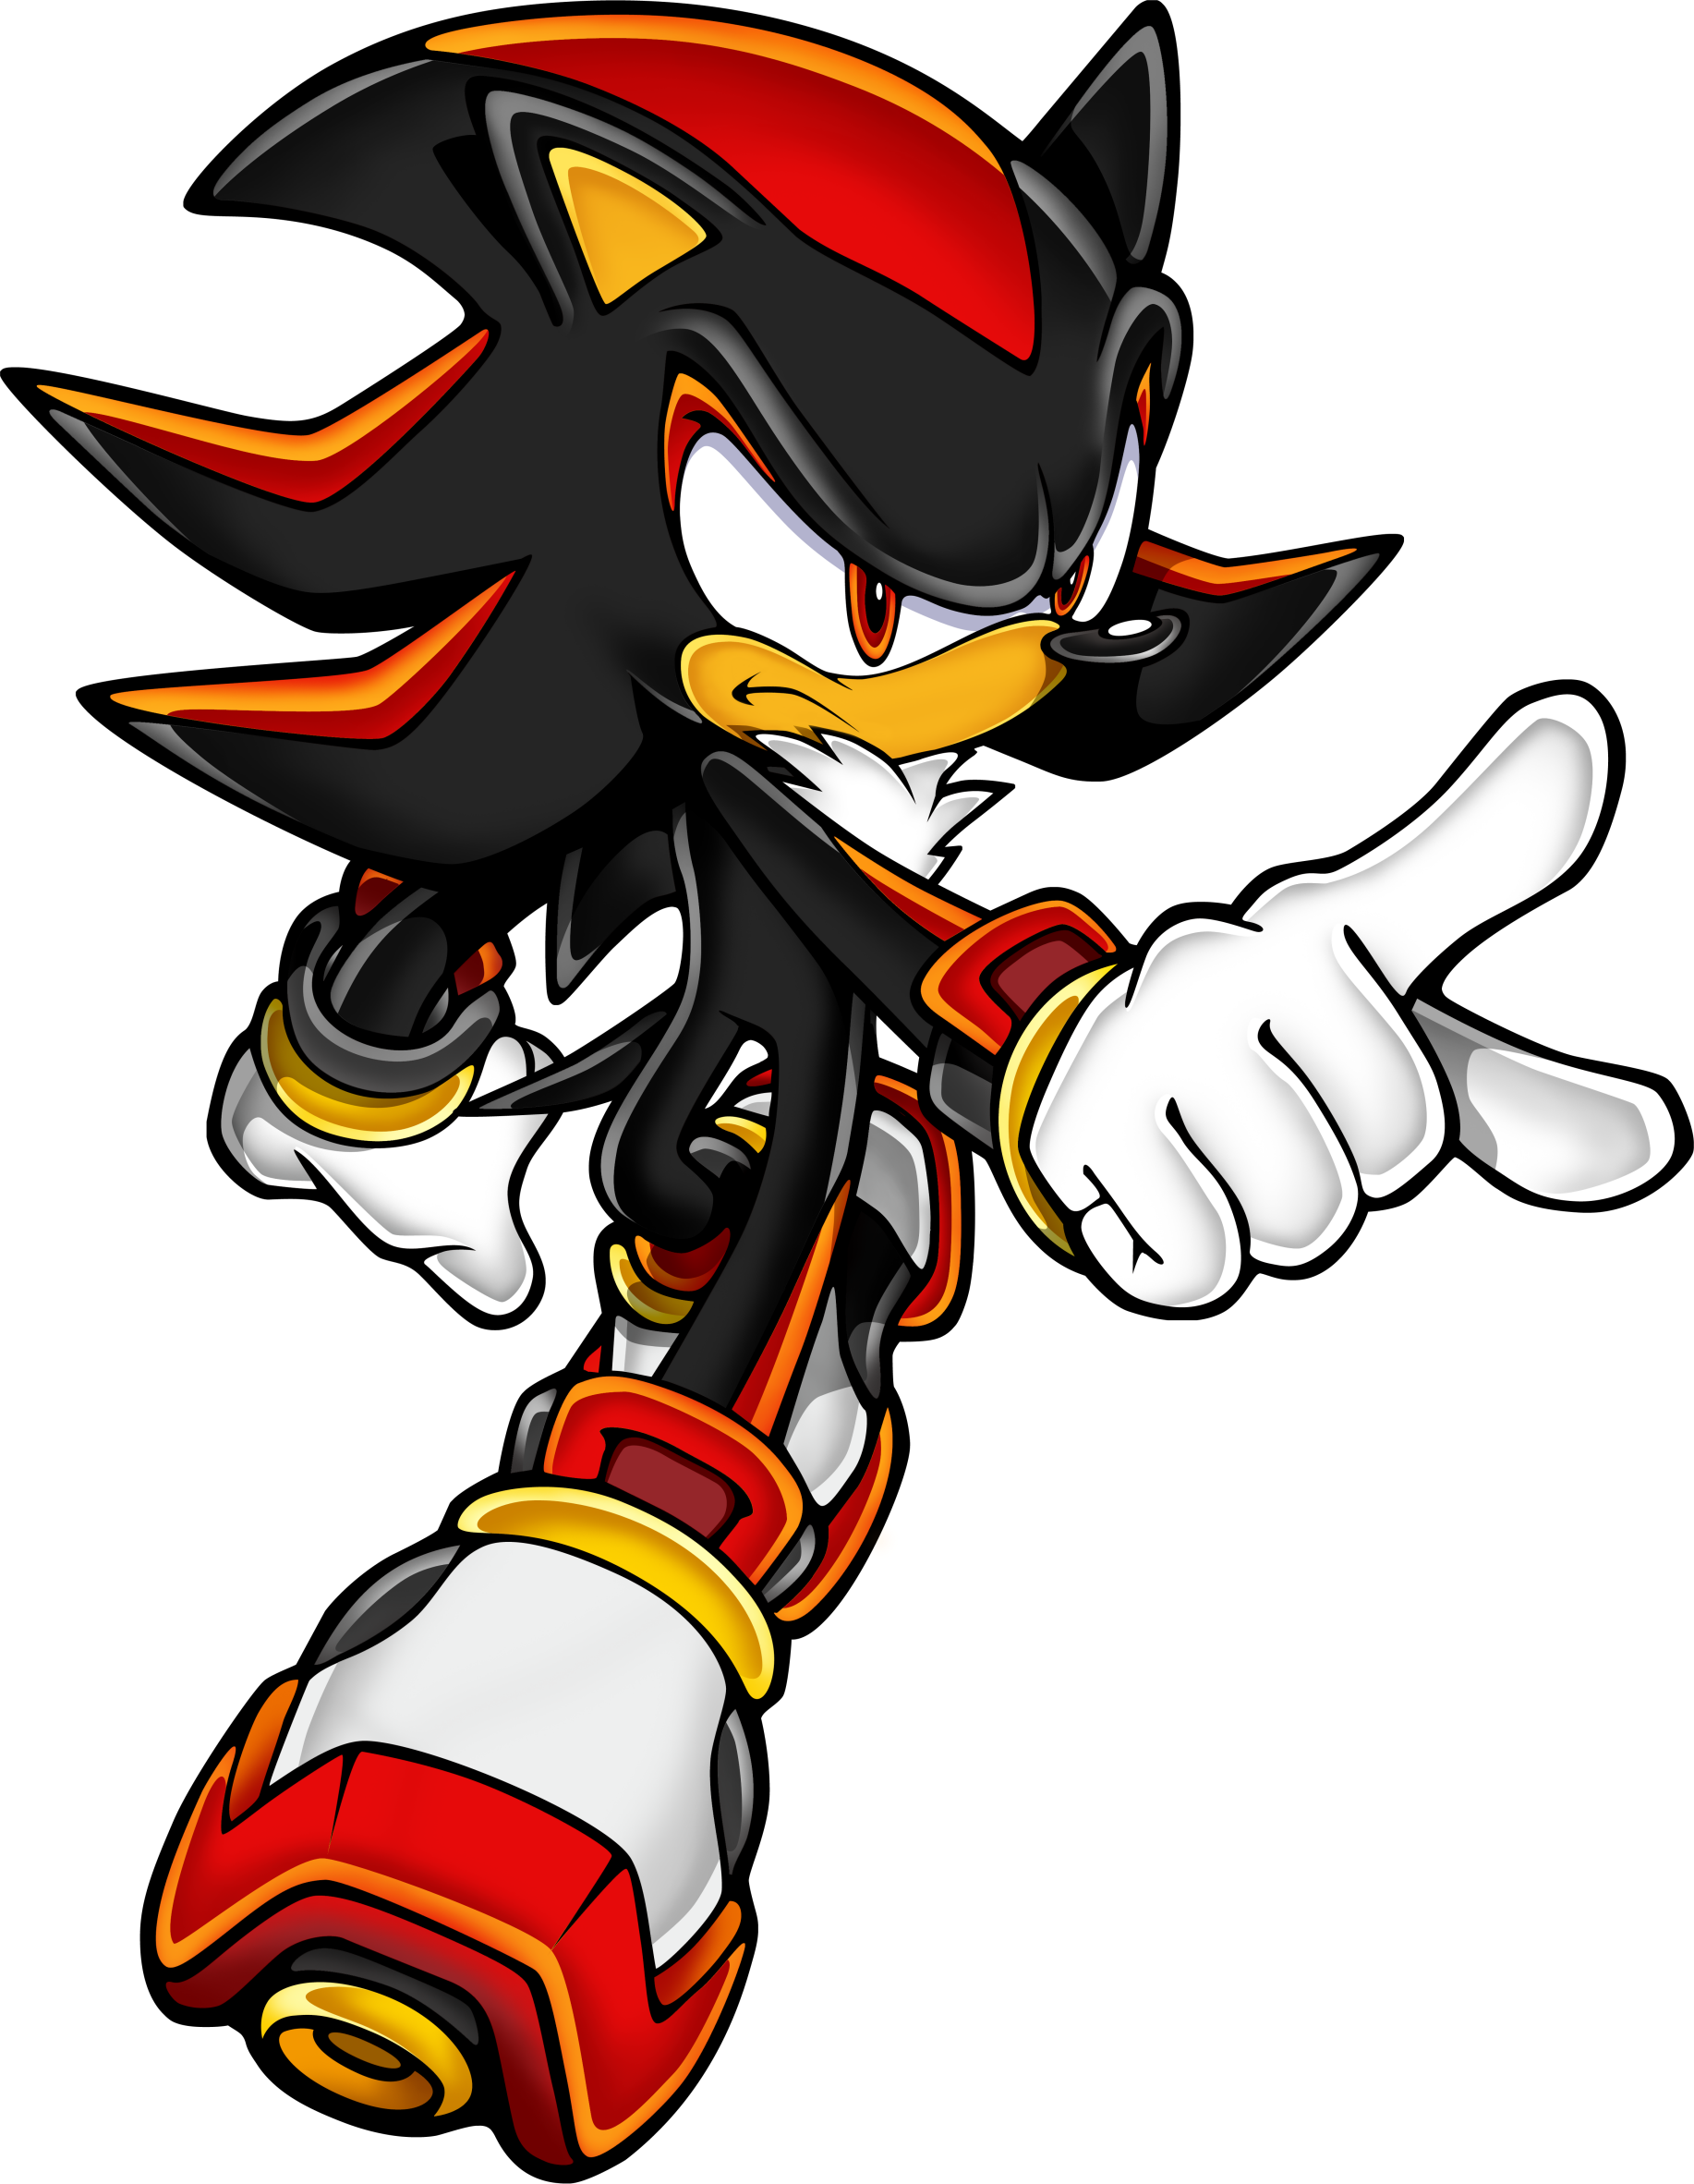 Shadow The Hedgehog Png (+).